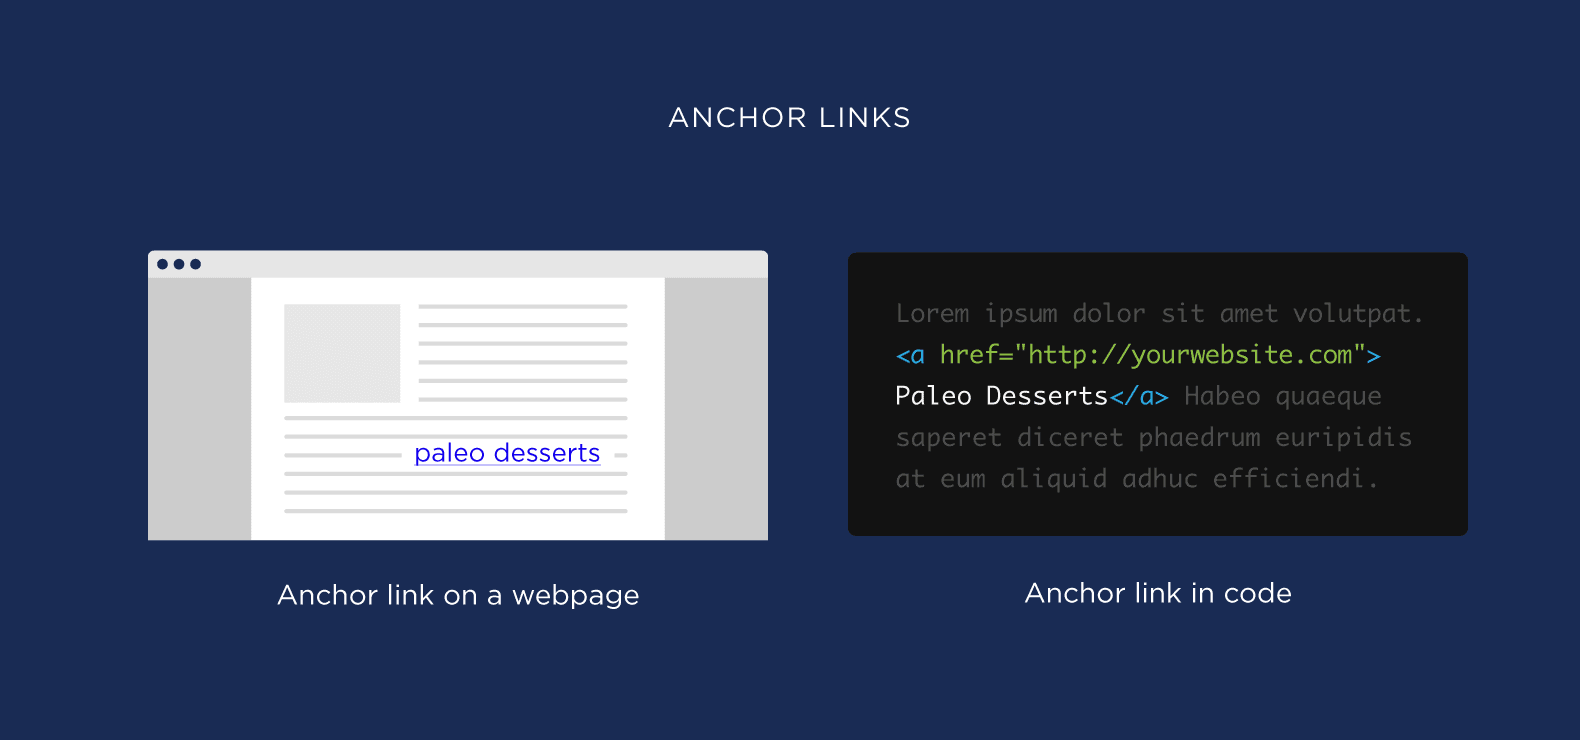 What are anchor links